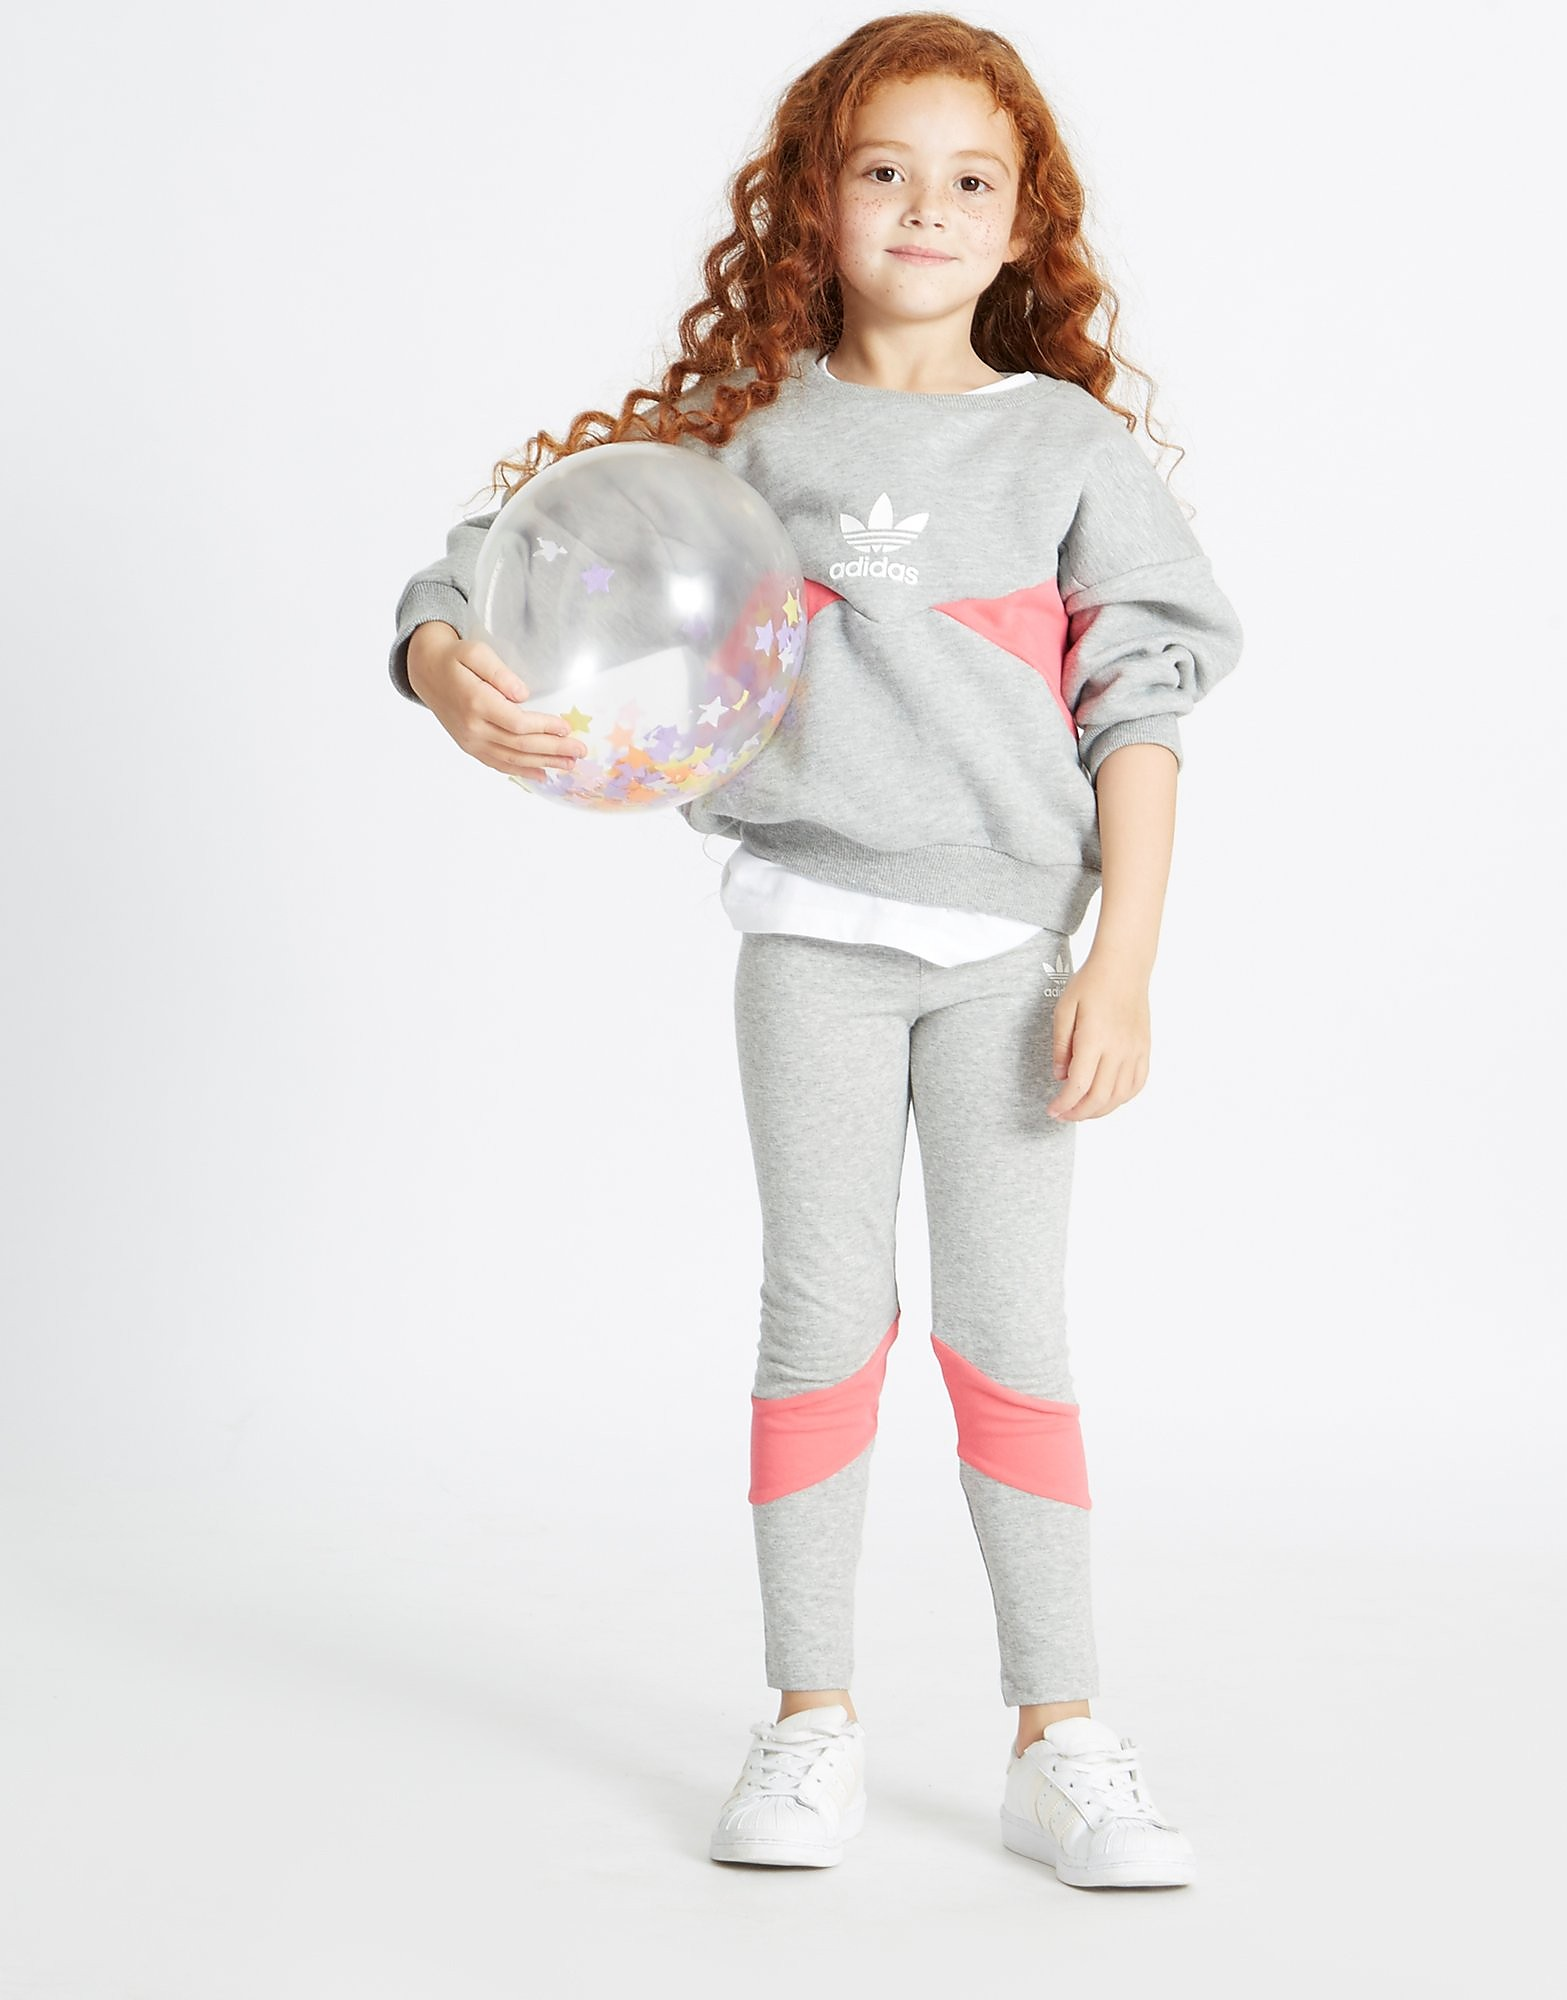 adidas Originals Girls' Crew Sweatshirt/Leggings Set Children